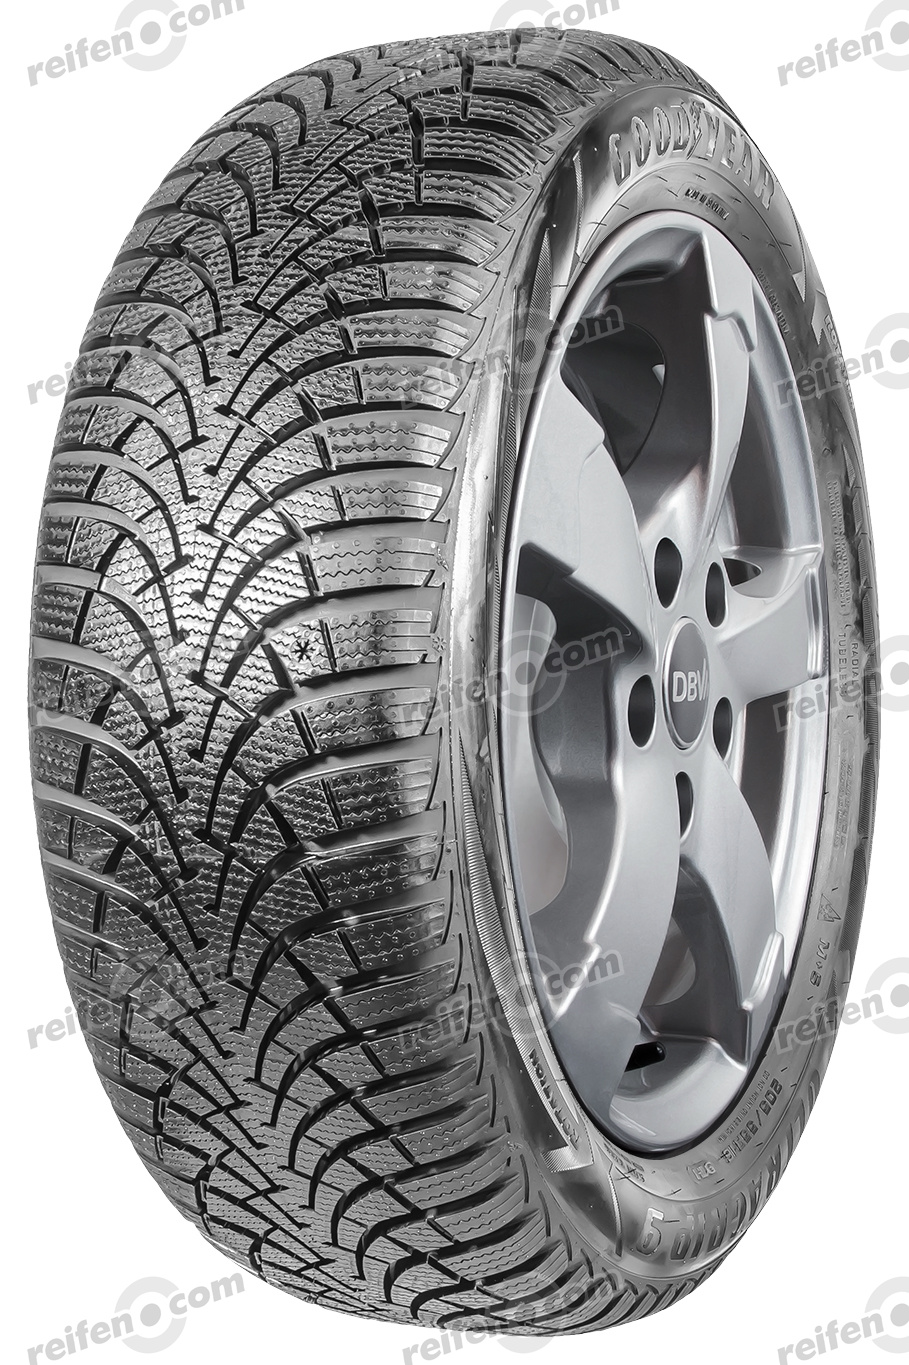 205/55 R16 91T Ultra Grip 9 MS  Ultra Grip 9 MS